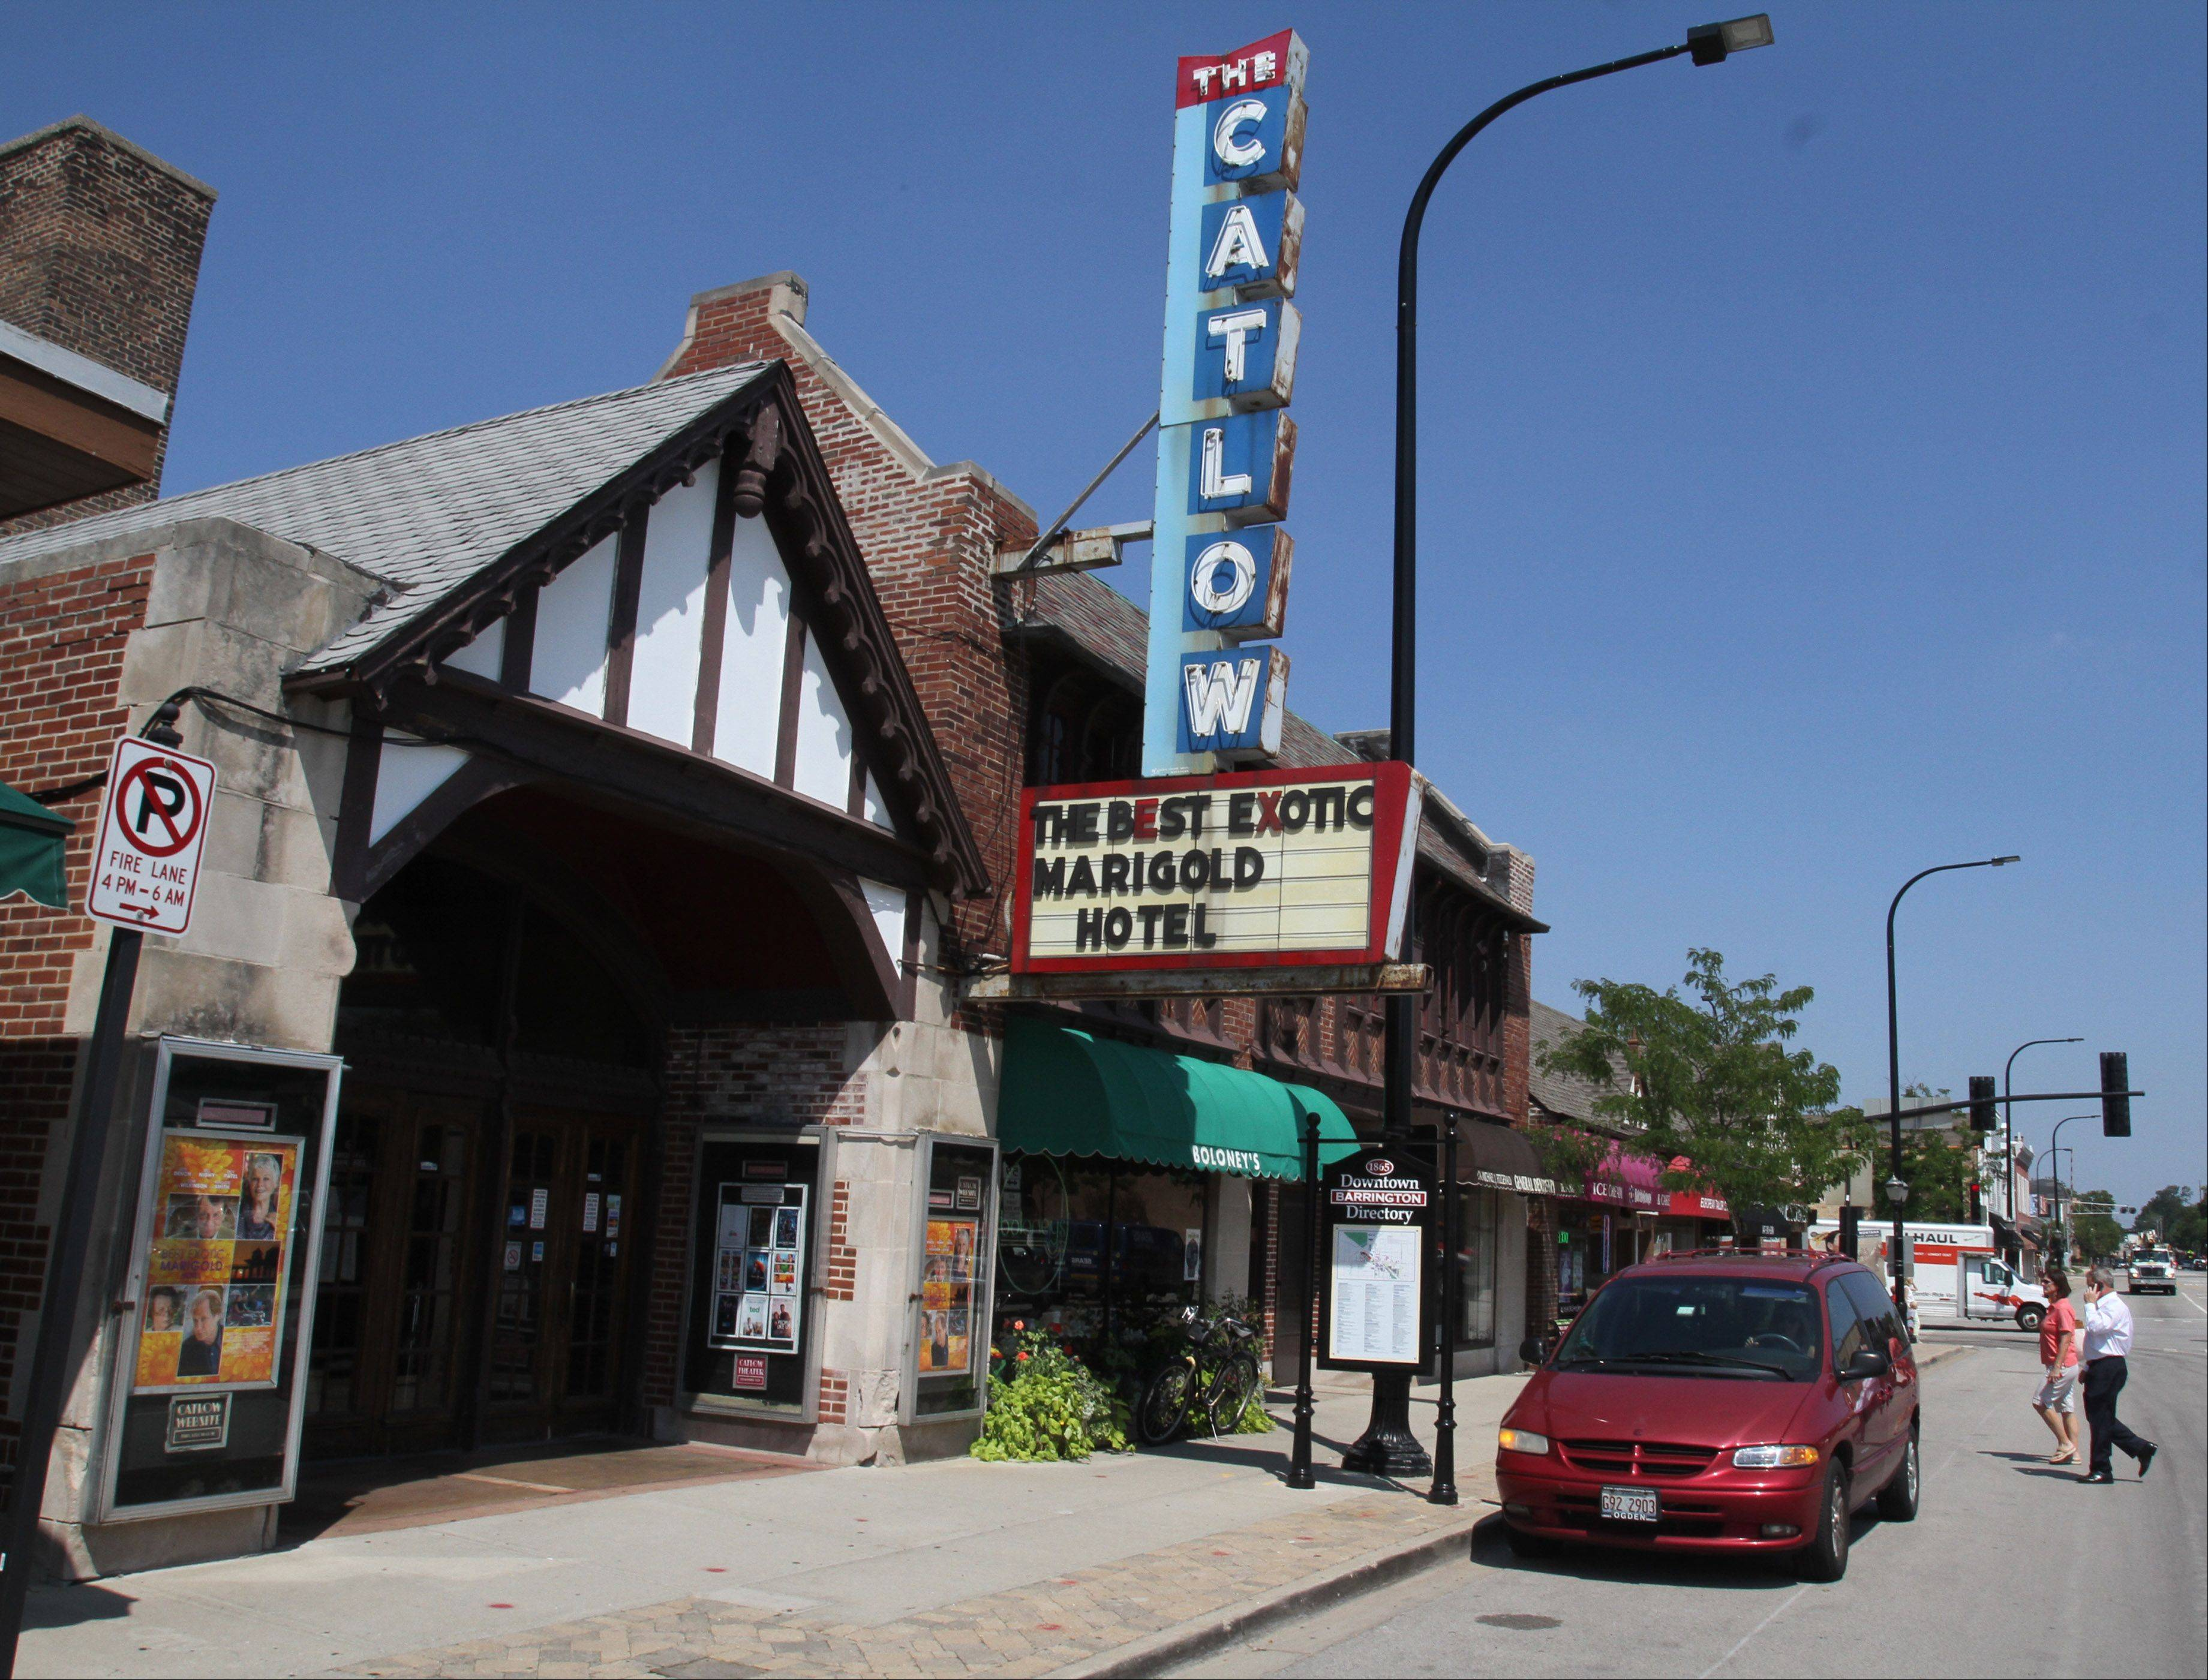 The Catlow theater in Barrington must upgrade to digital projection if it wants to continue showing Hollywood's latest releases.